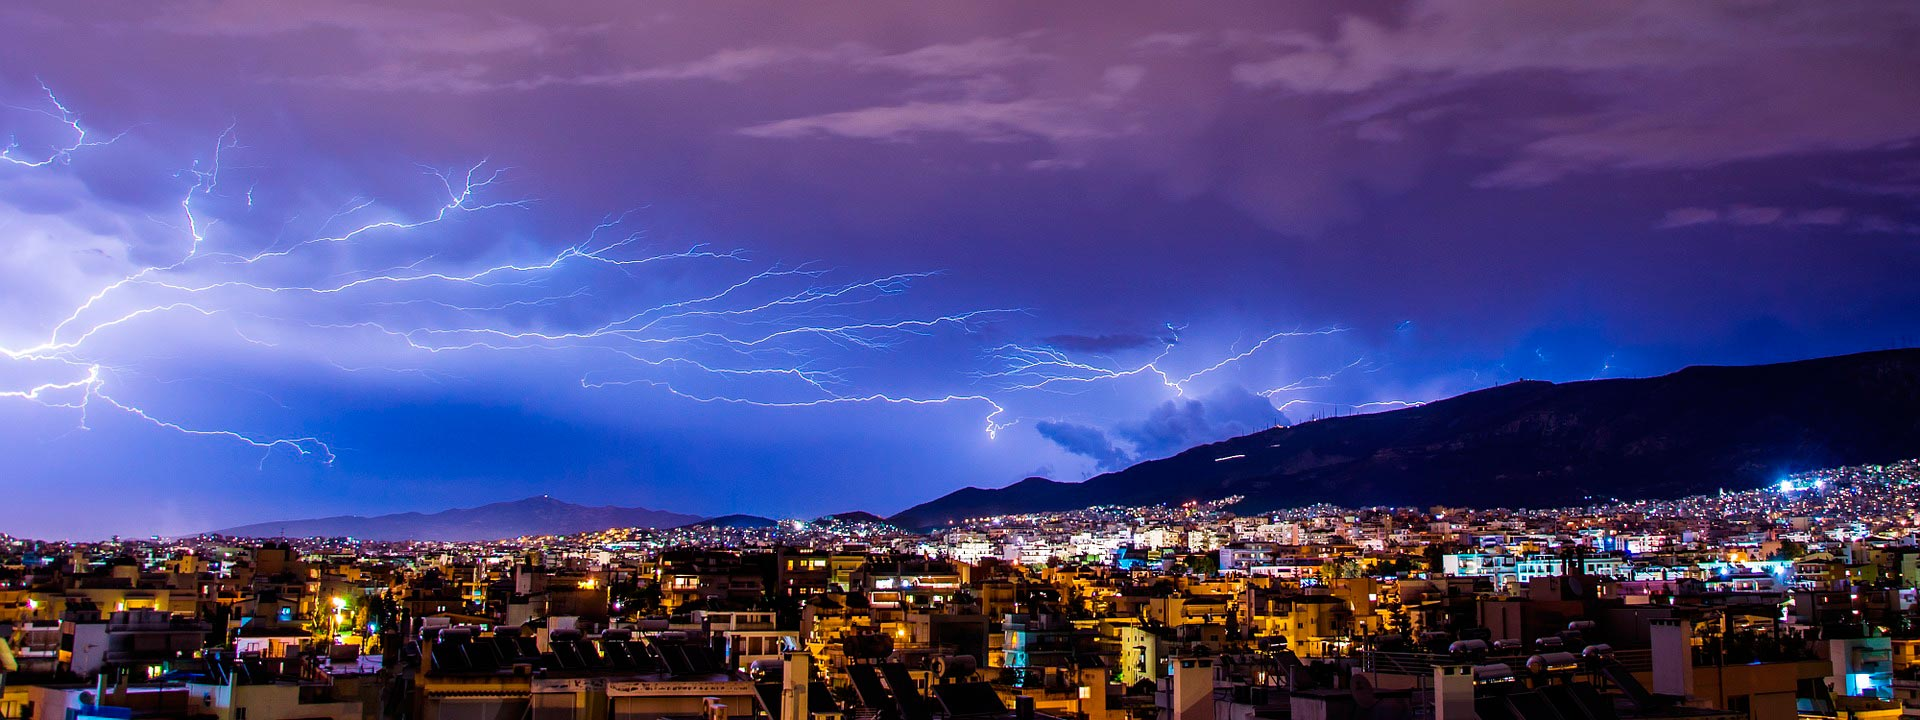 How does a lightning rod work?